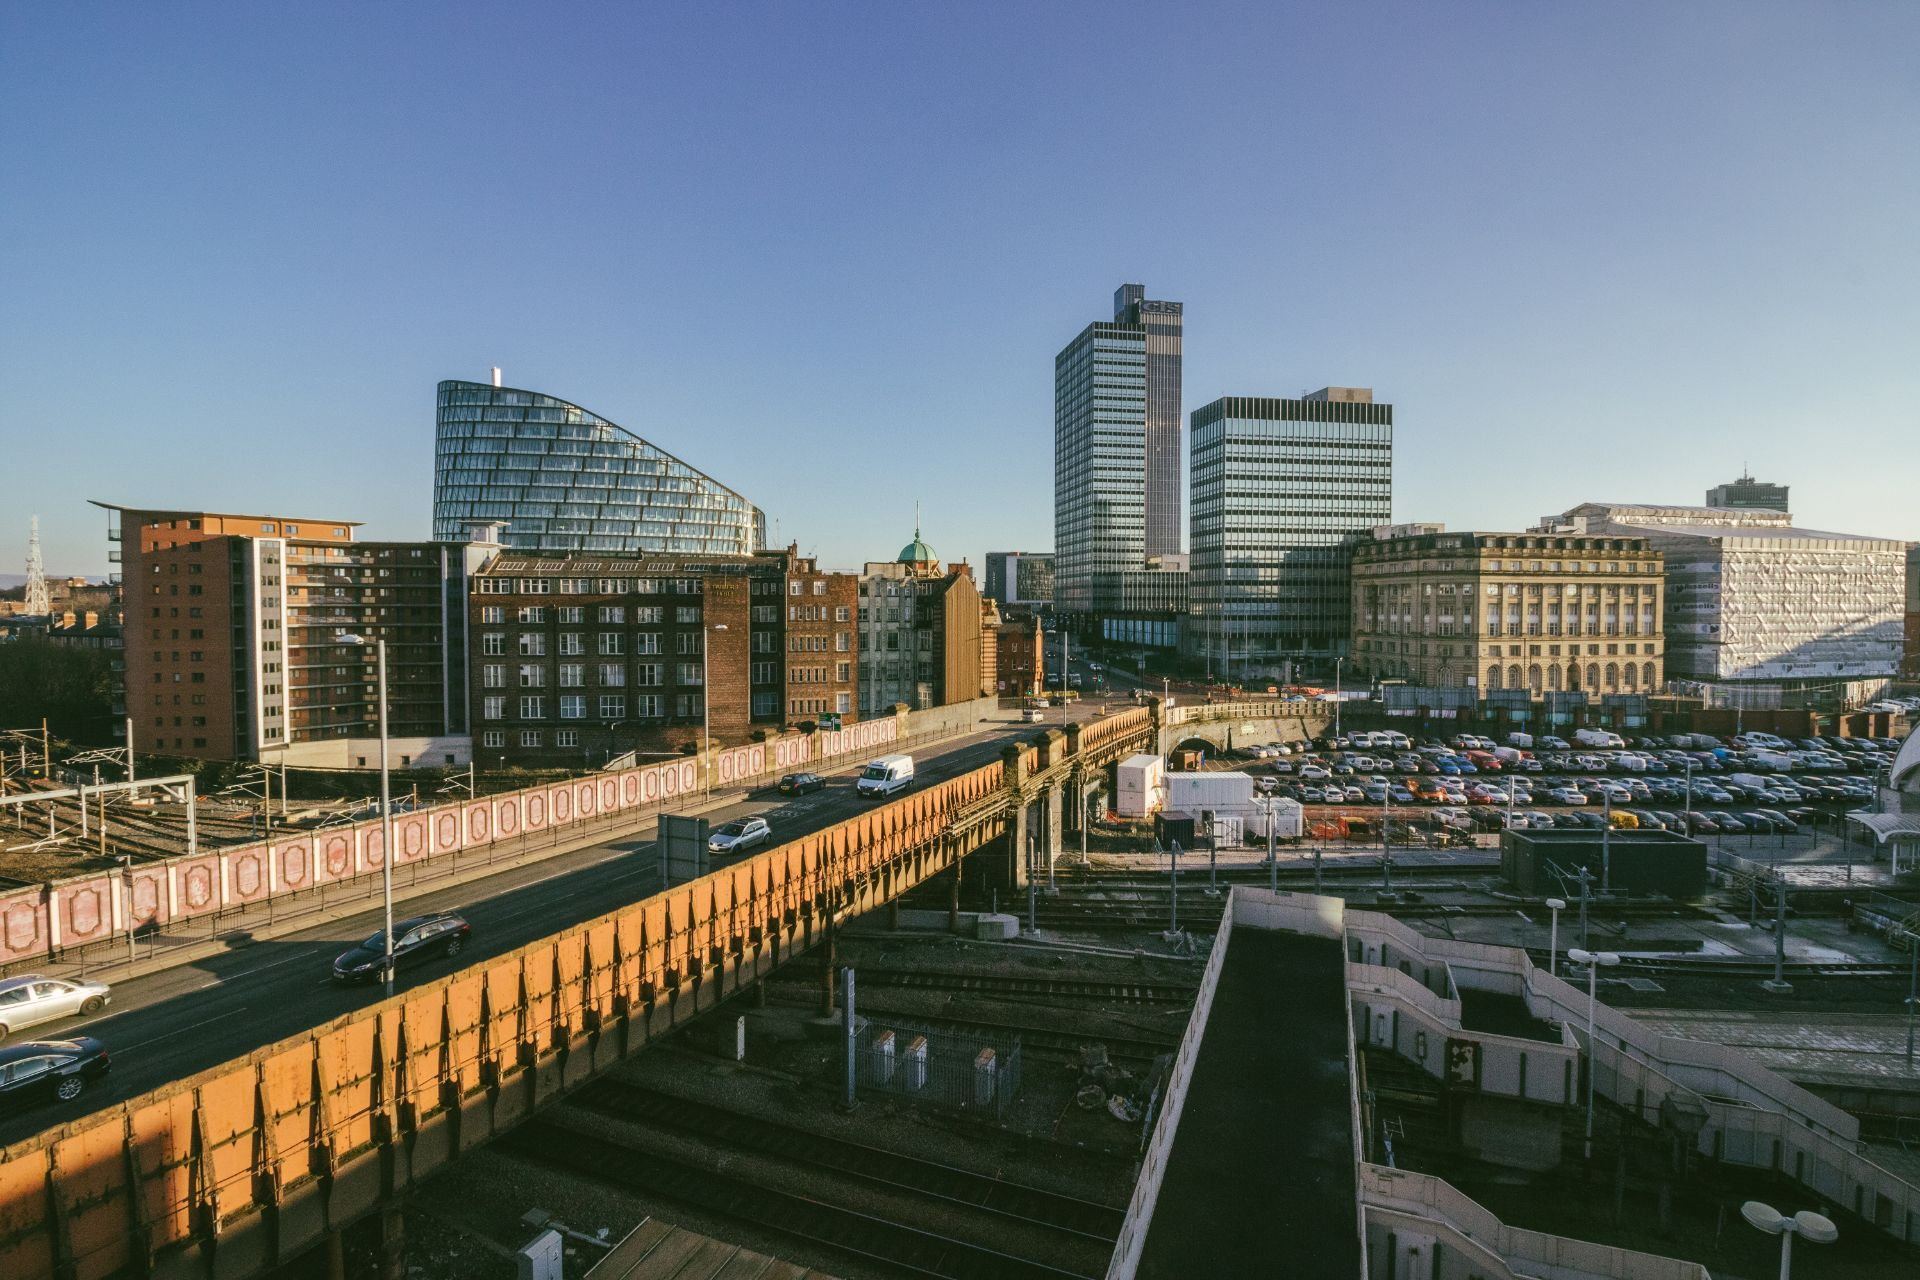 road-going-through-built-up-british-city-manchester-england-uk